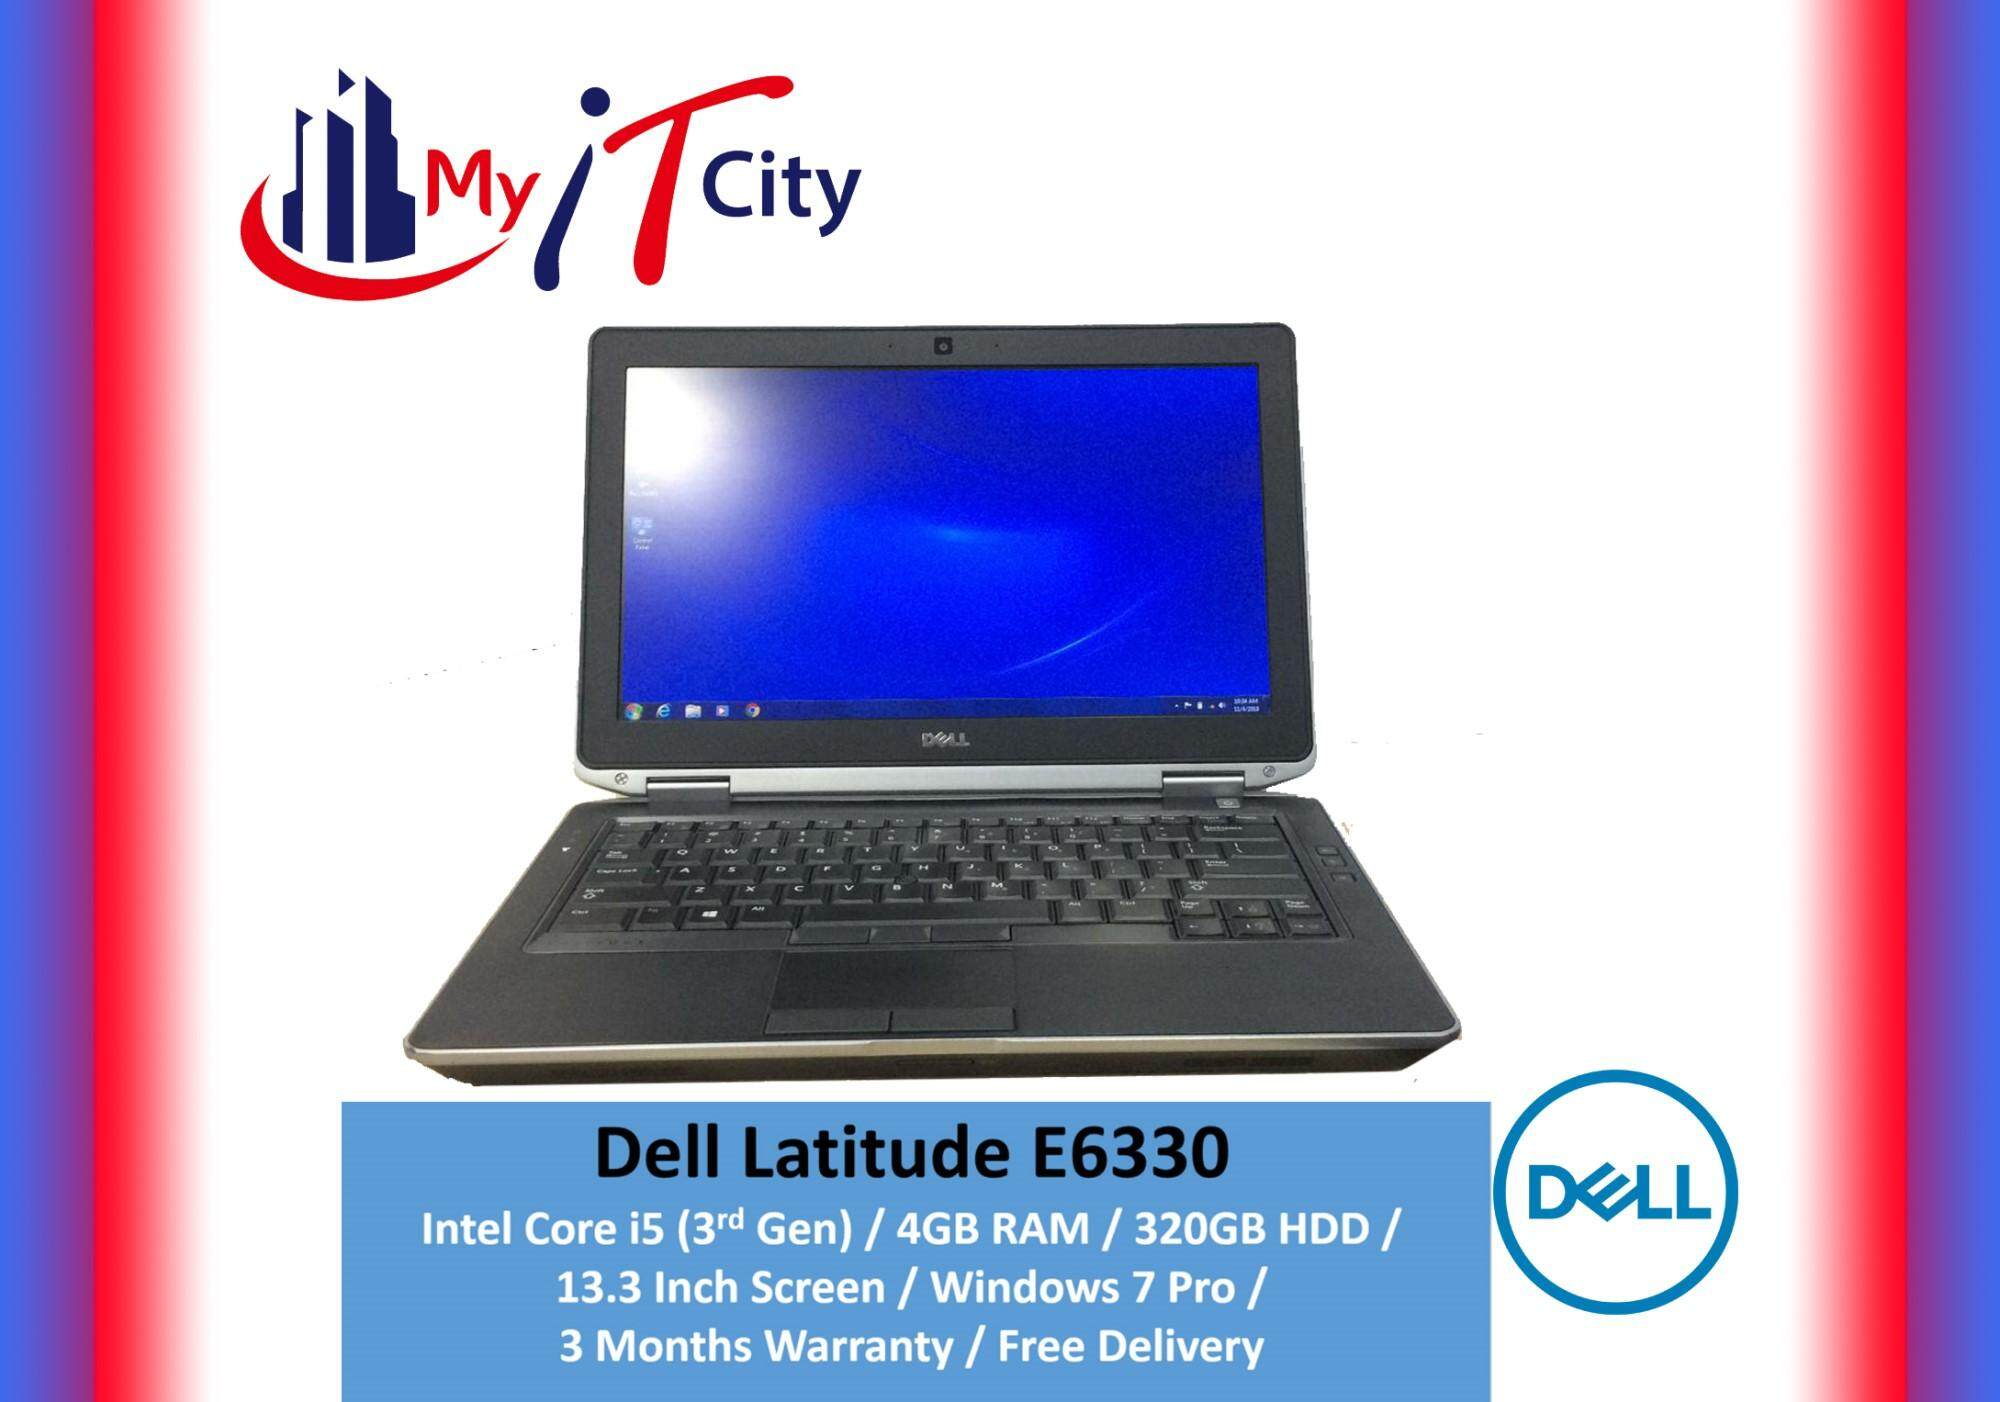 Dell Latitude E6330 Laptop - Core i5 (3rd Gen) / 4GB RAM / 320GB HDD / Windows 7 Pro / 3 Months Warranty (Refurbished) Malaysia